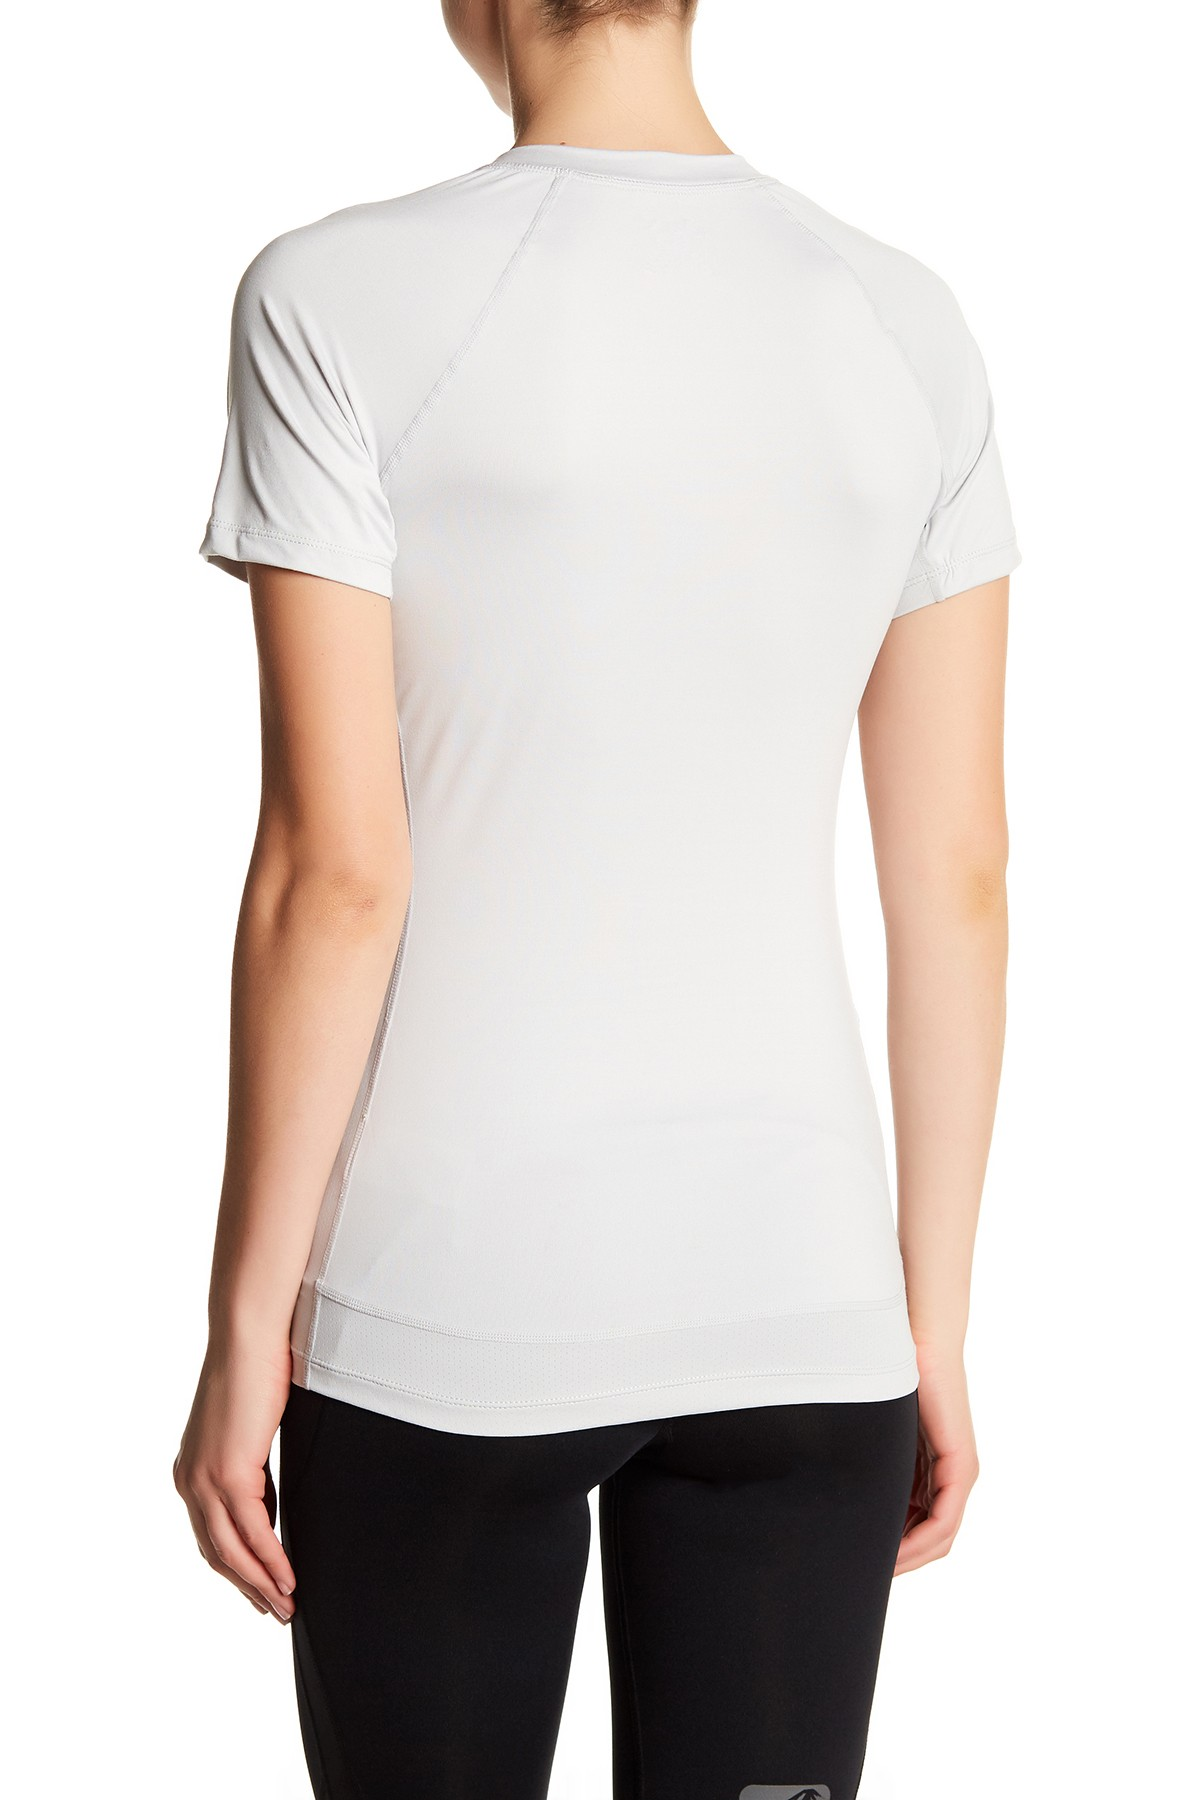 Asics-NEW-Solid-Hue-Women-039-s-V-Neck-Performance-ASX-Dry-T-Shirt-Top-38 thumbnail 8